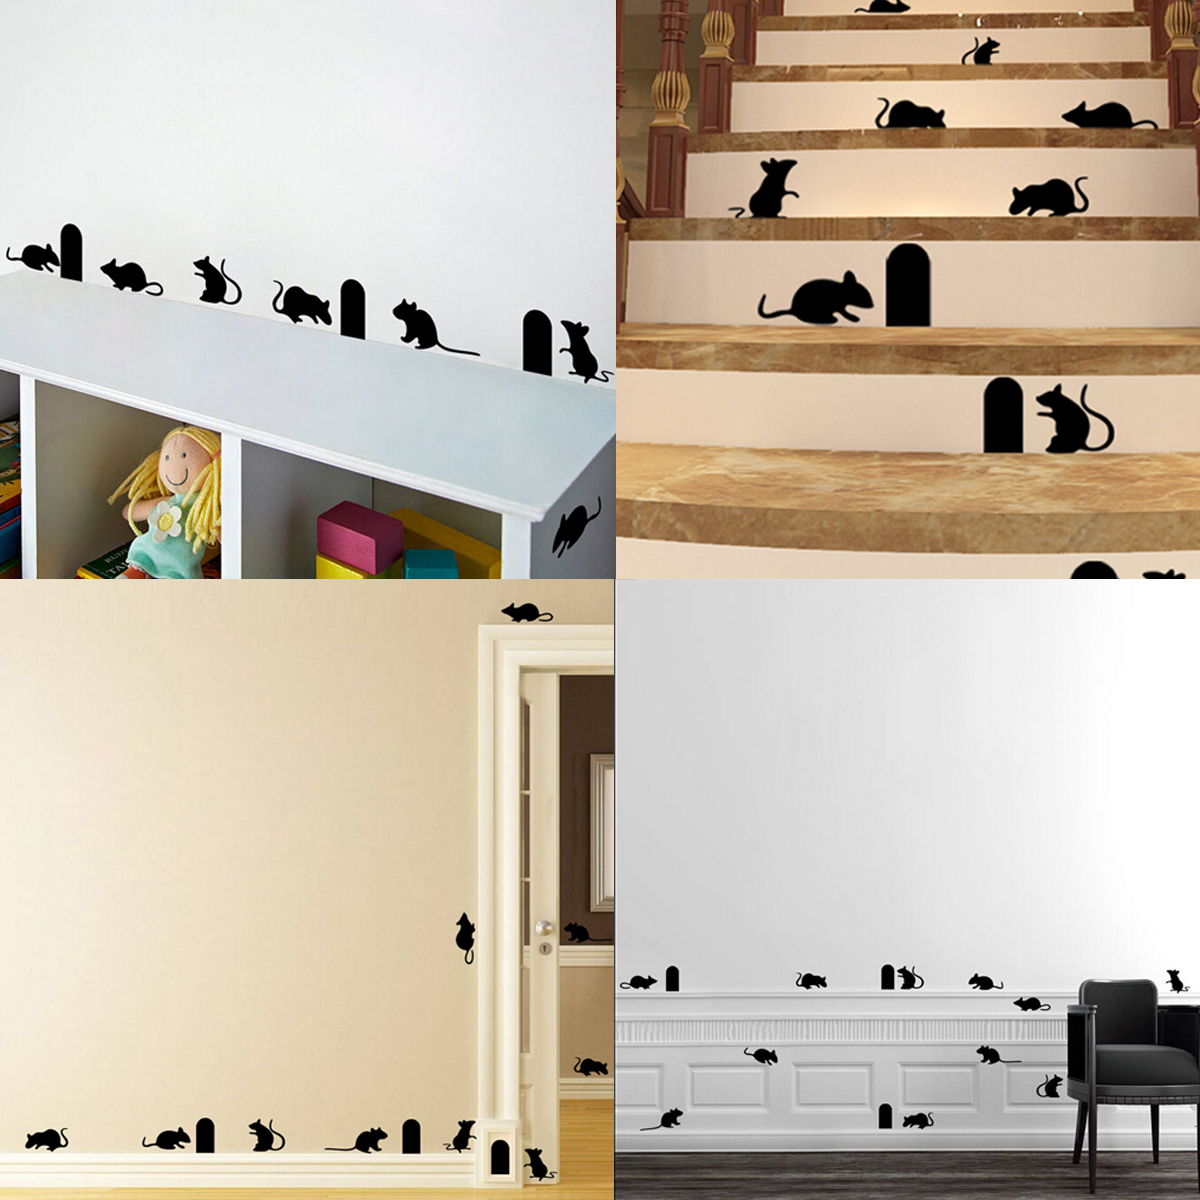 Souris trou rat mouse autocollant mural amovible sticker maison couloir d cor - Stickers couloir maison ...